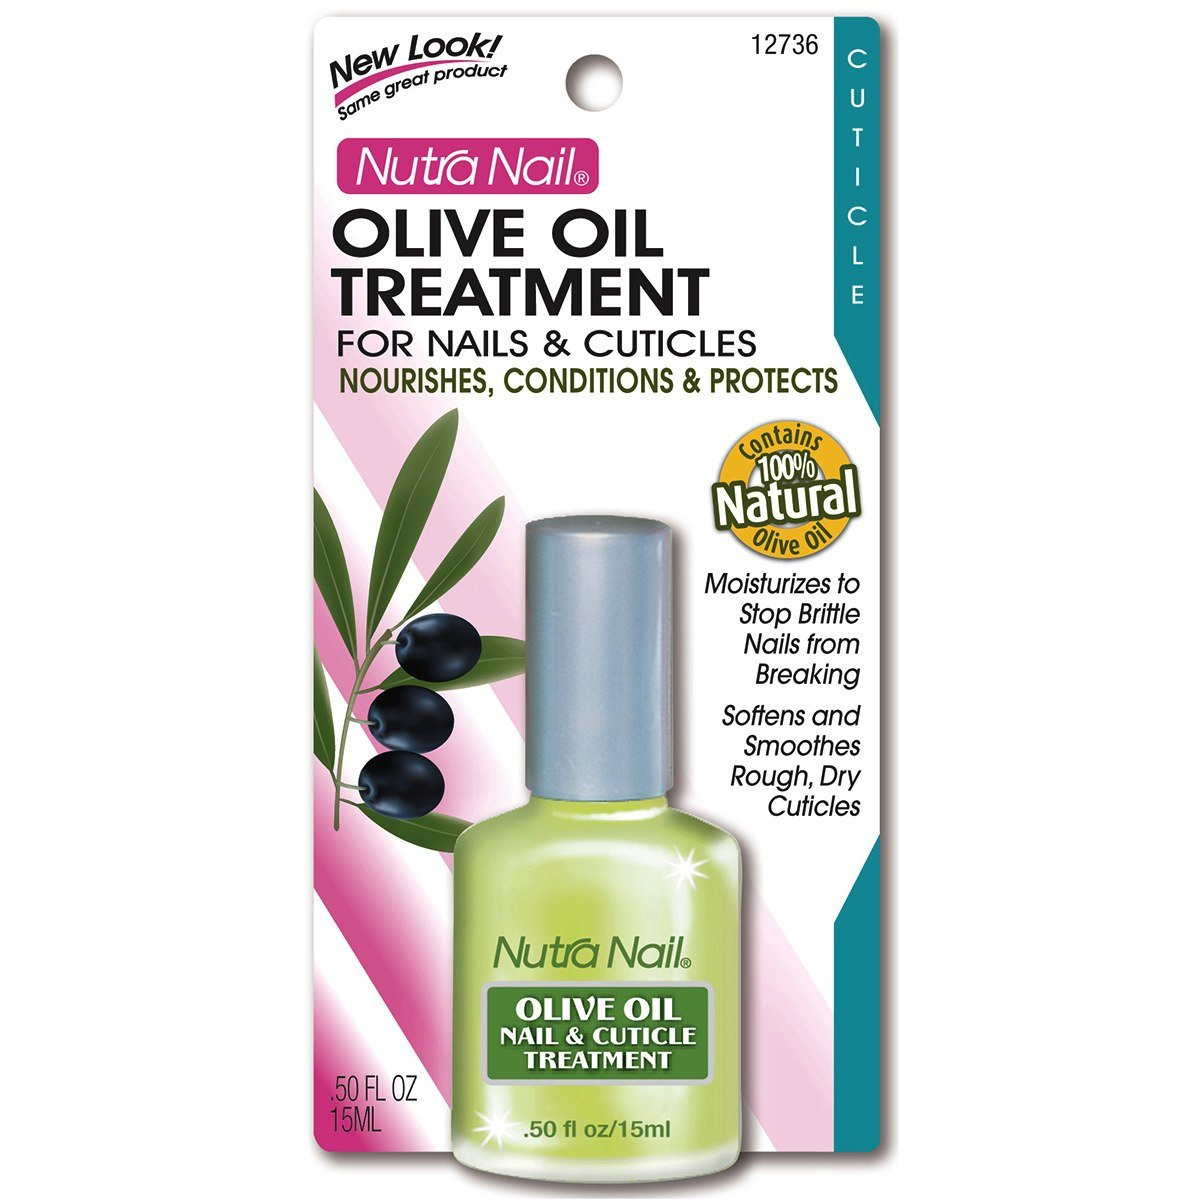 Amazon.com : Nutra Nail Olive Oil Treatment for Nails and Cuticles ...